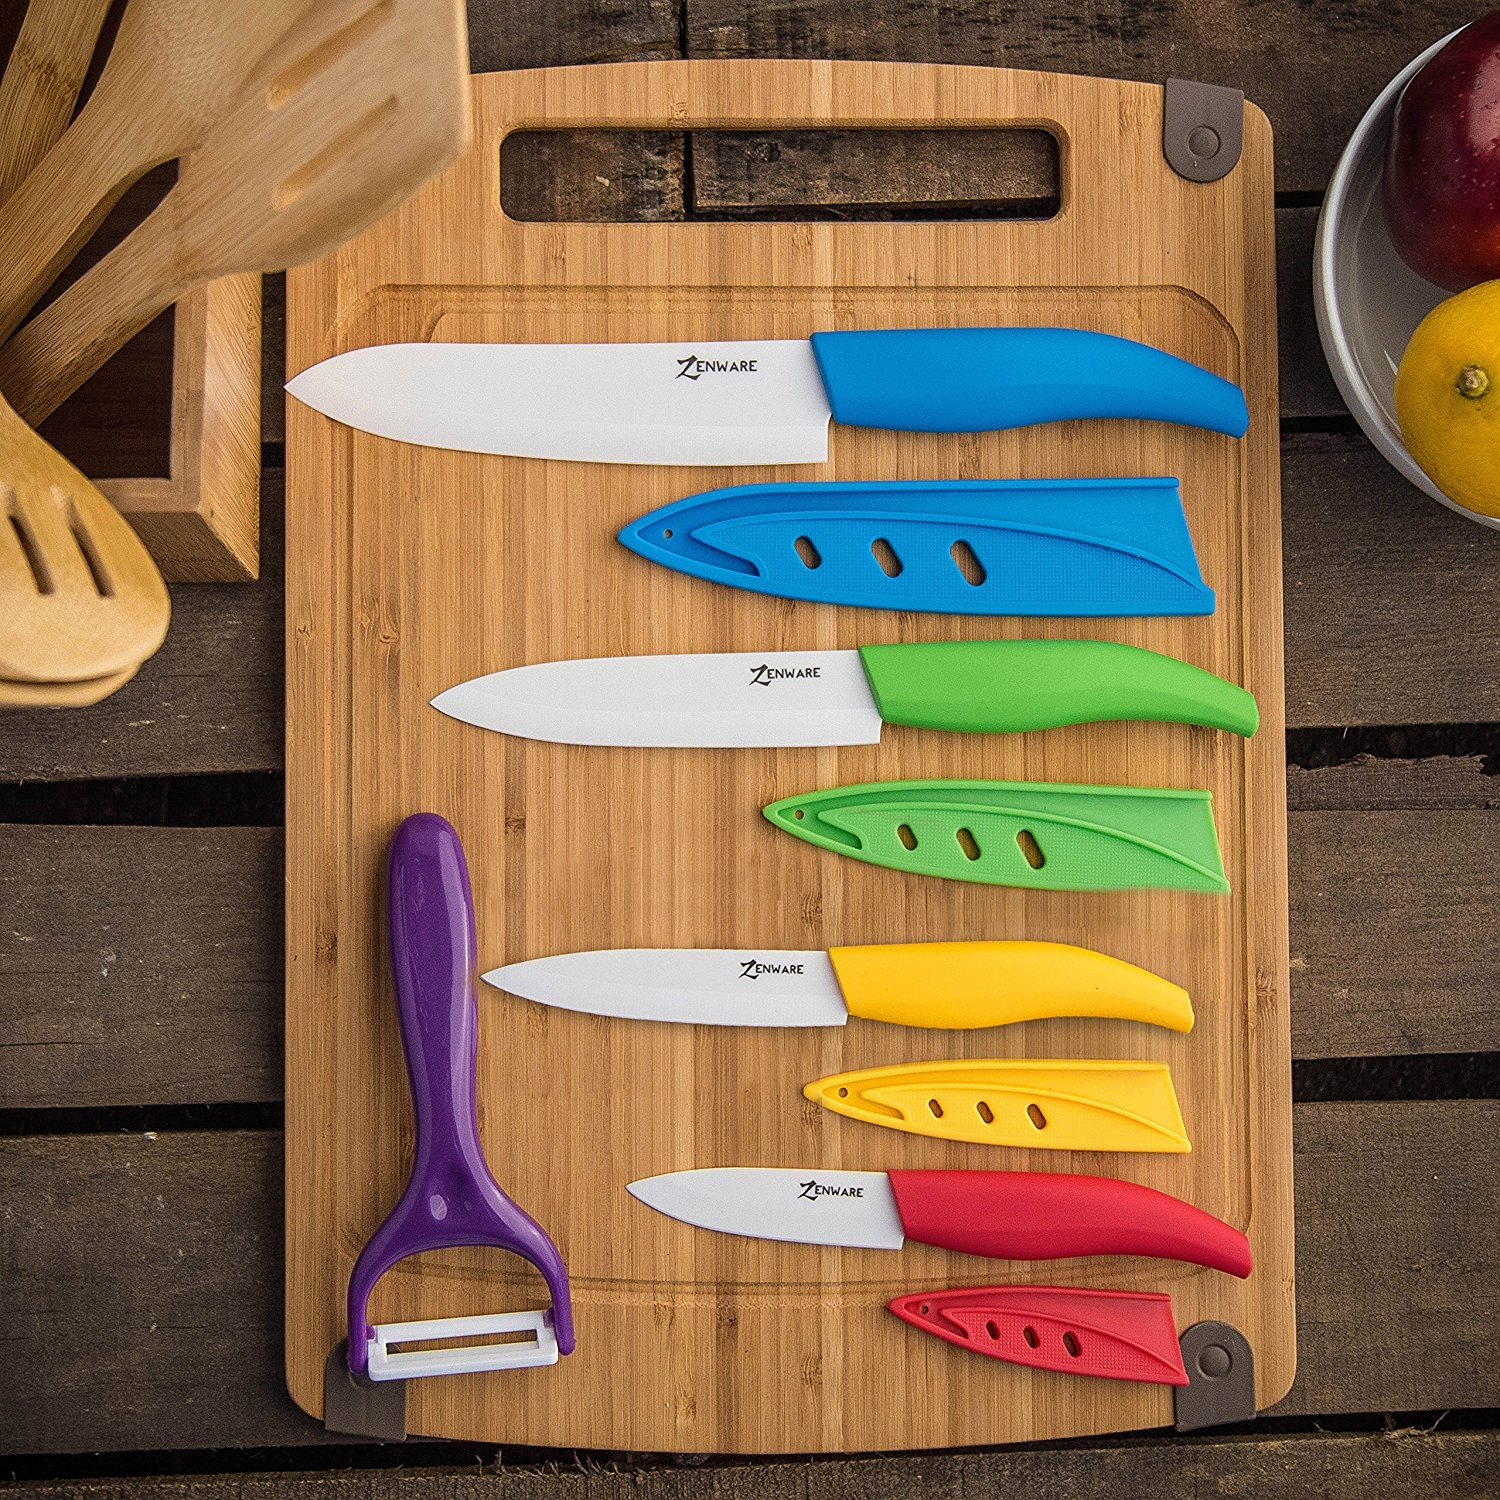 ZenWare 9 Piece Multi Color Ceramic Cutlery Kitchen Knives